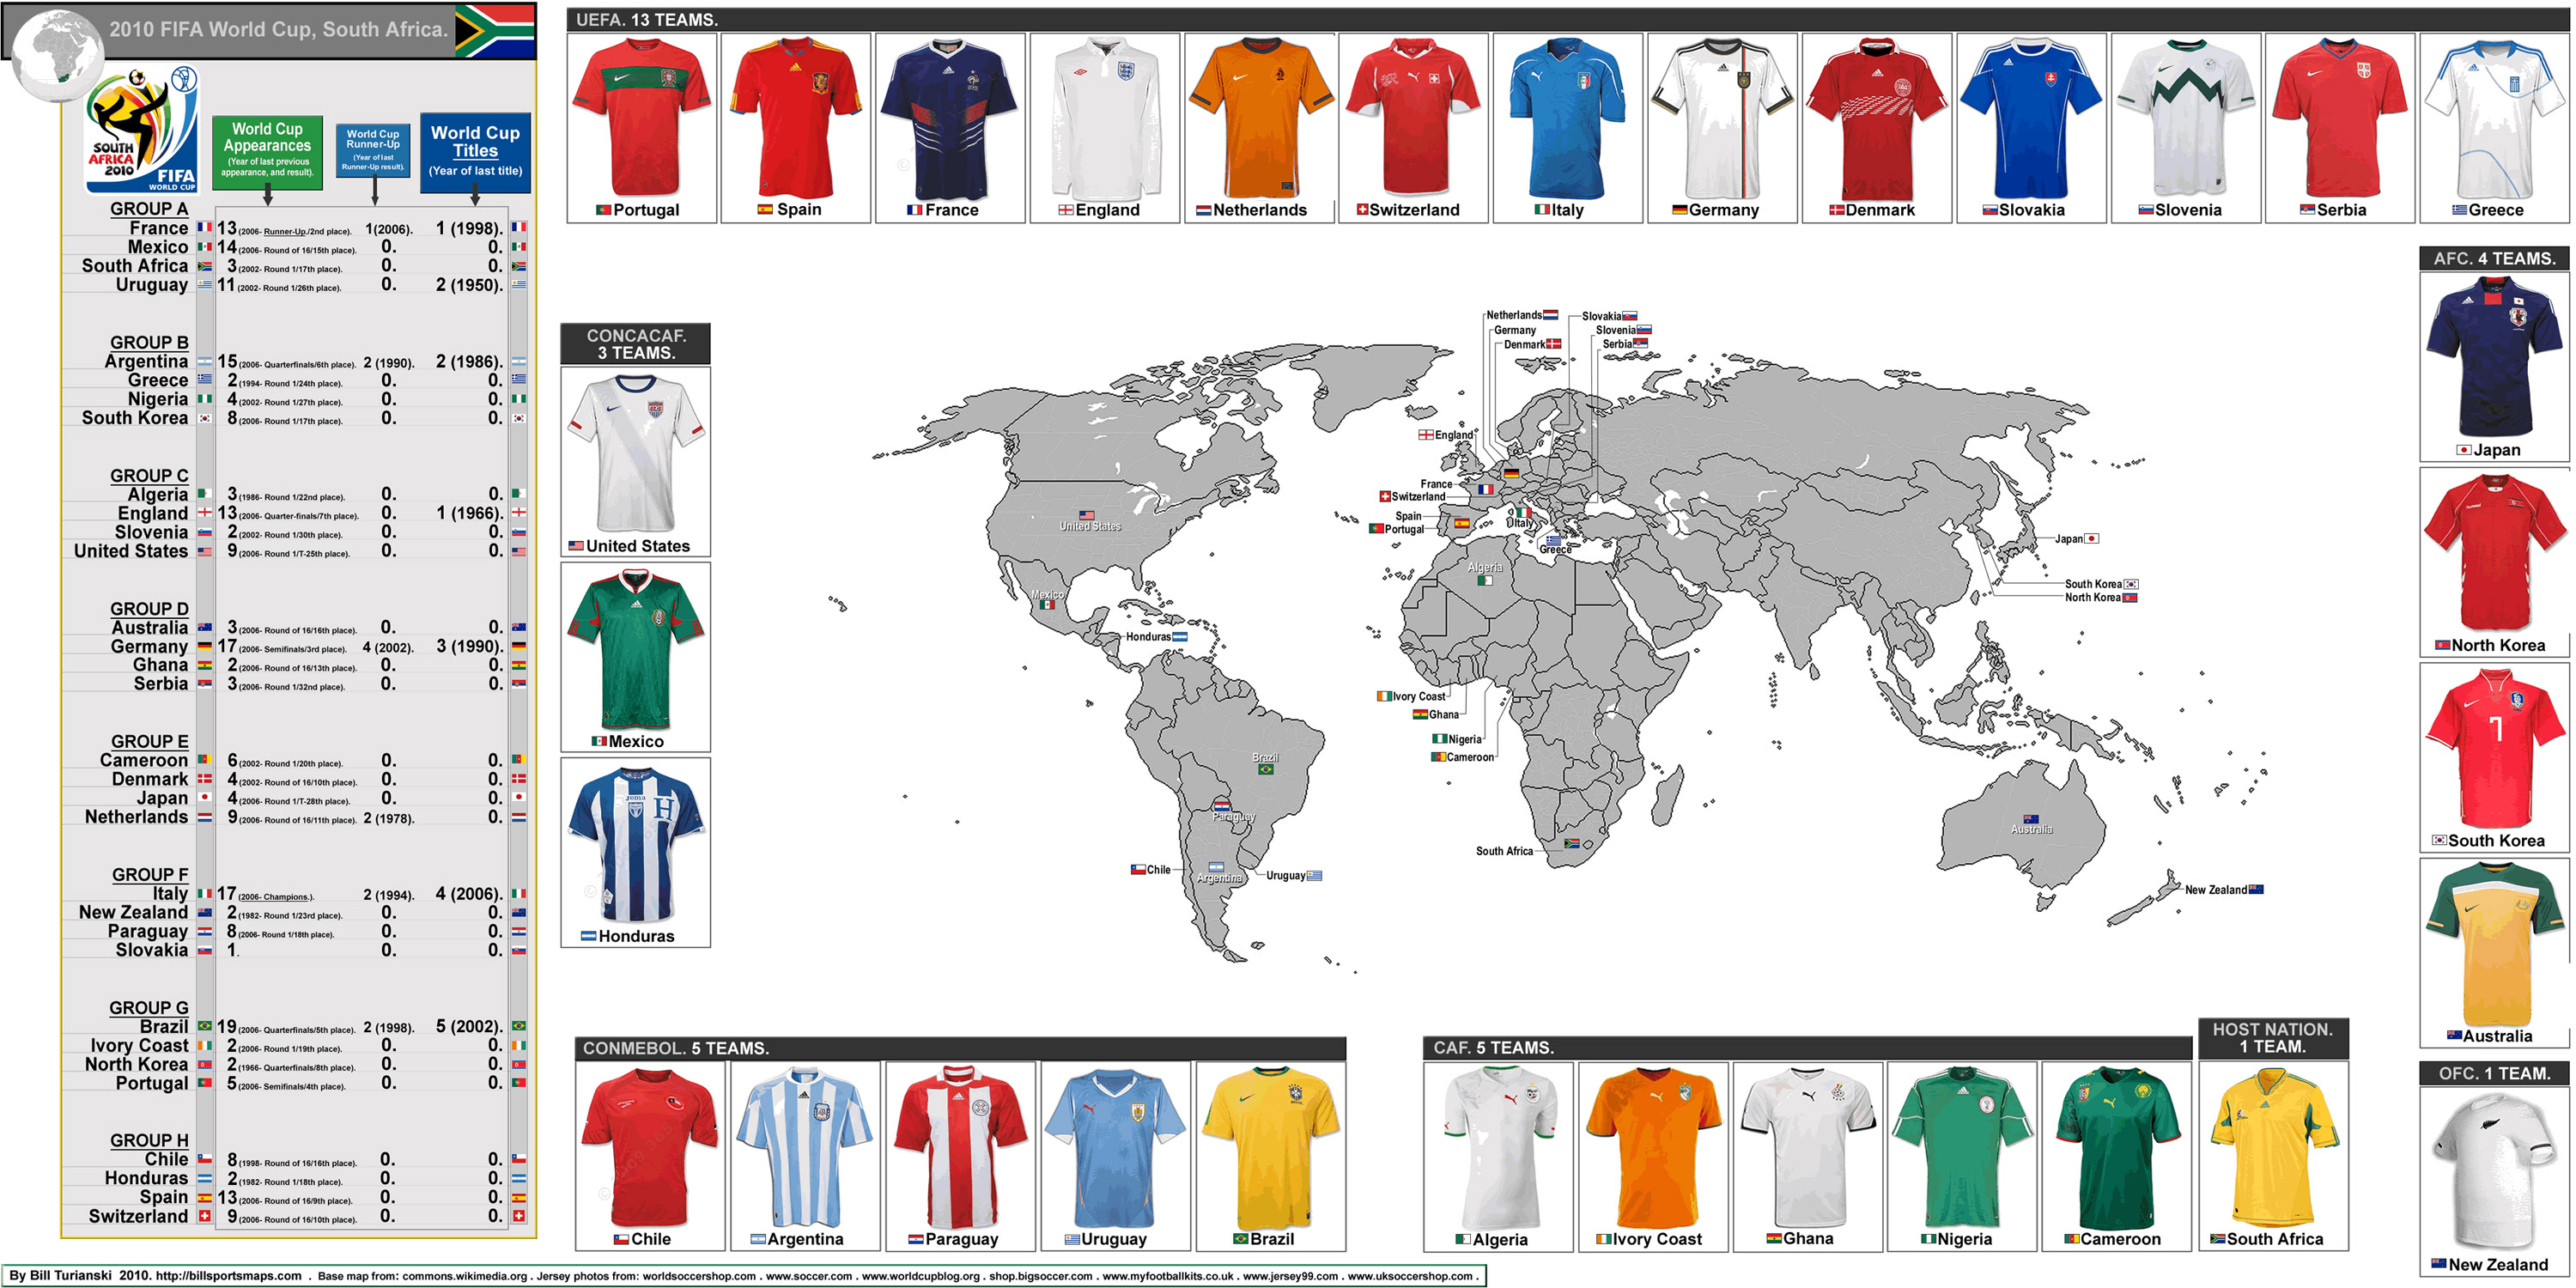 Illustrated map of the World Cup